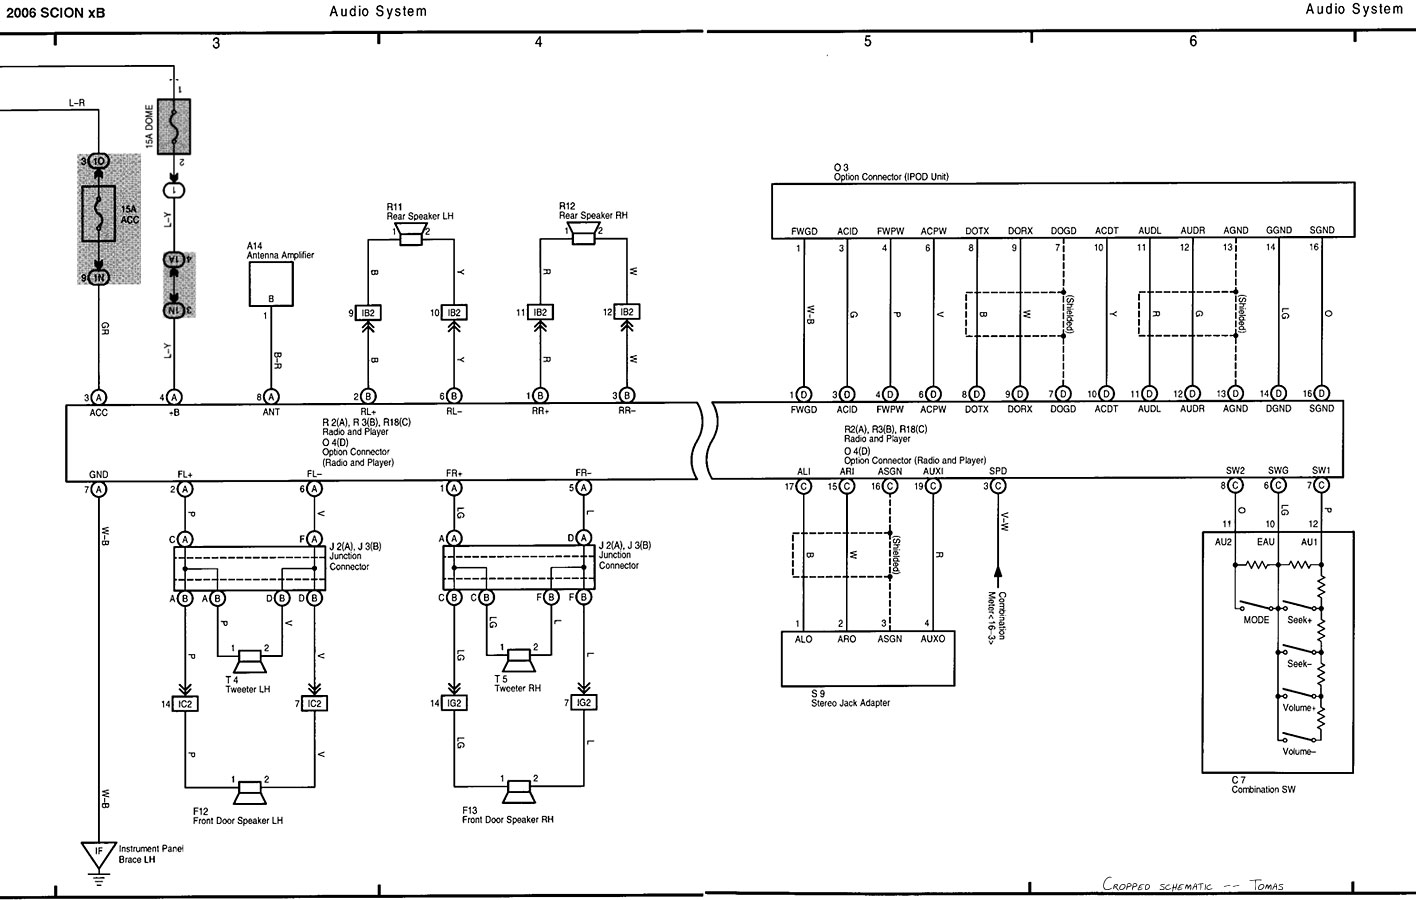 2005 scion tc radio wiring diagram?t\=1508751668 mg tc wiring diagram amphicar wiring diagram \u2022 wiring diagrams j 2010 dodge charger stereo wiring diagram at soozxer.org